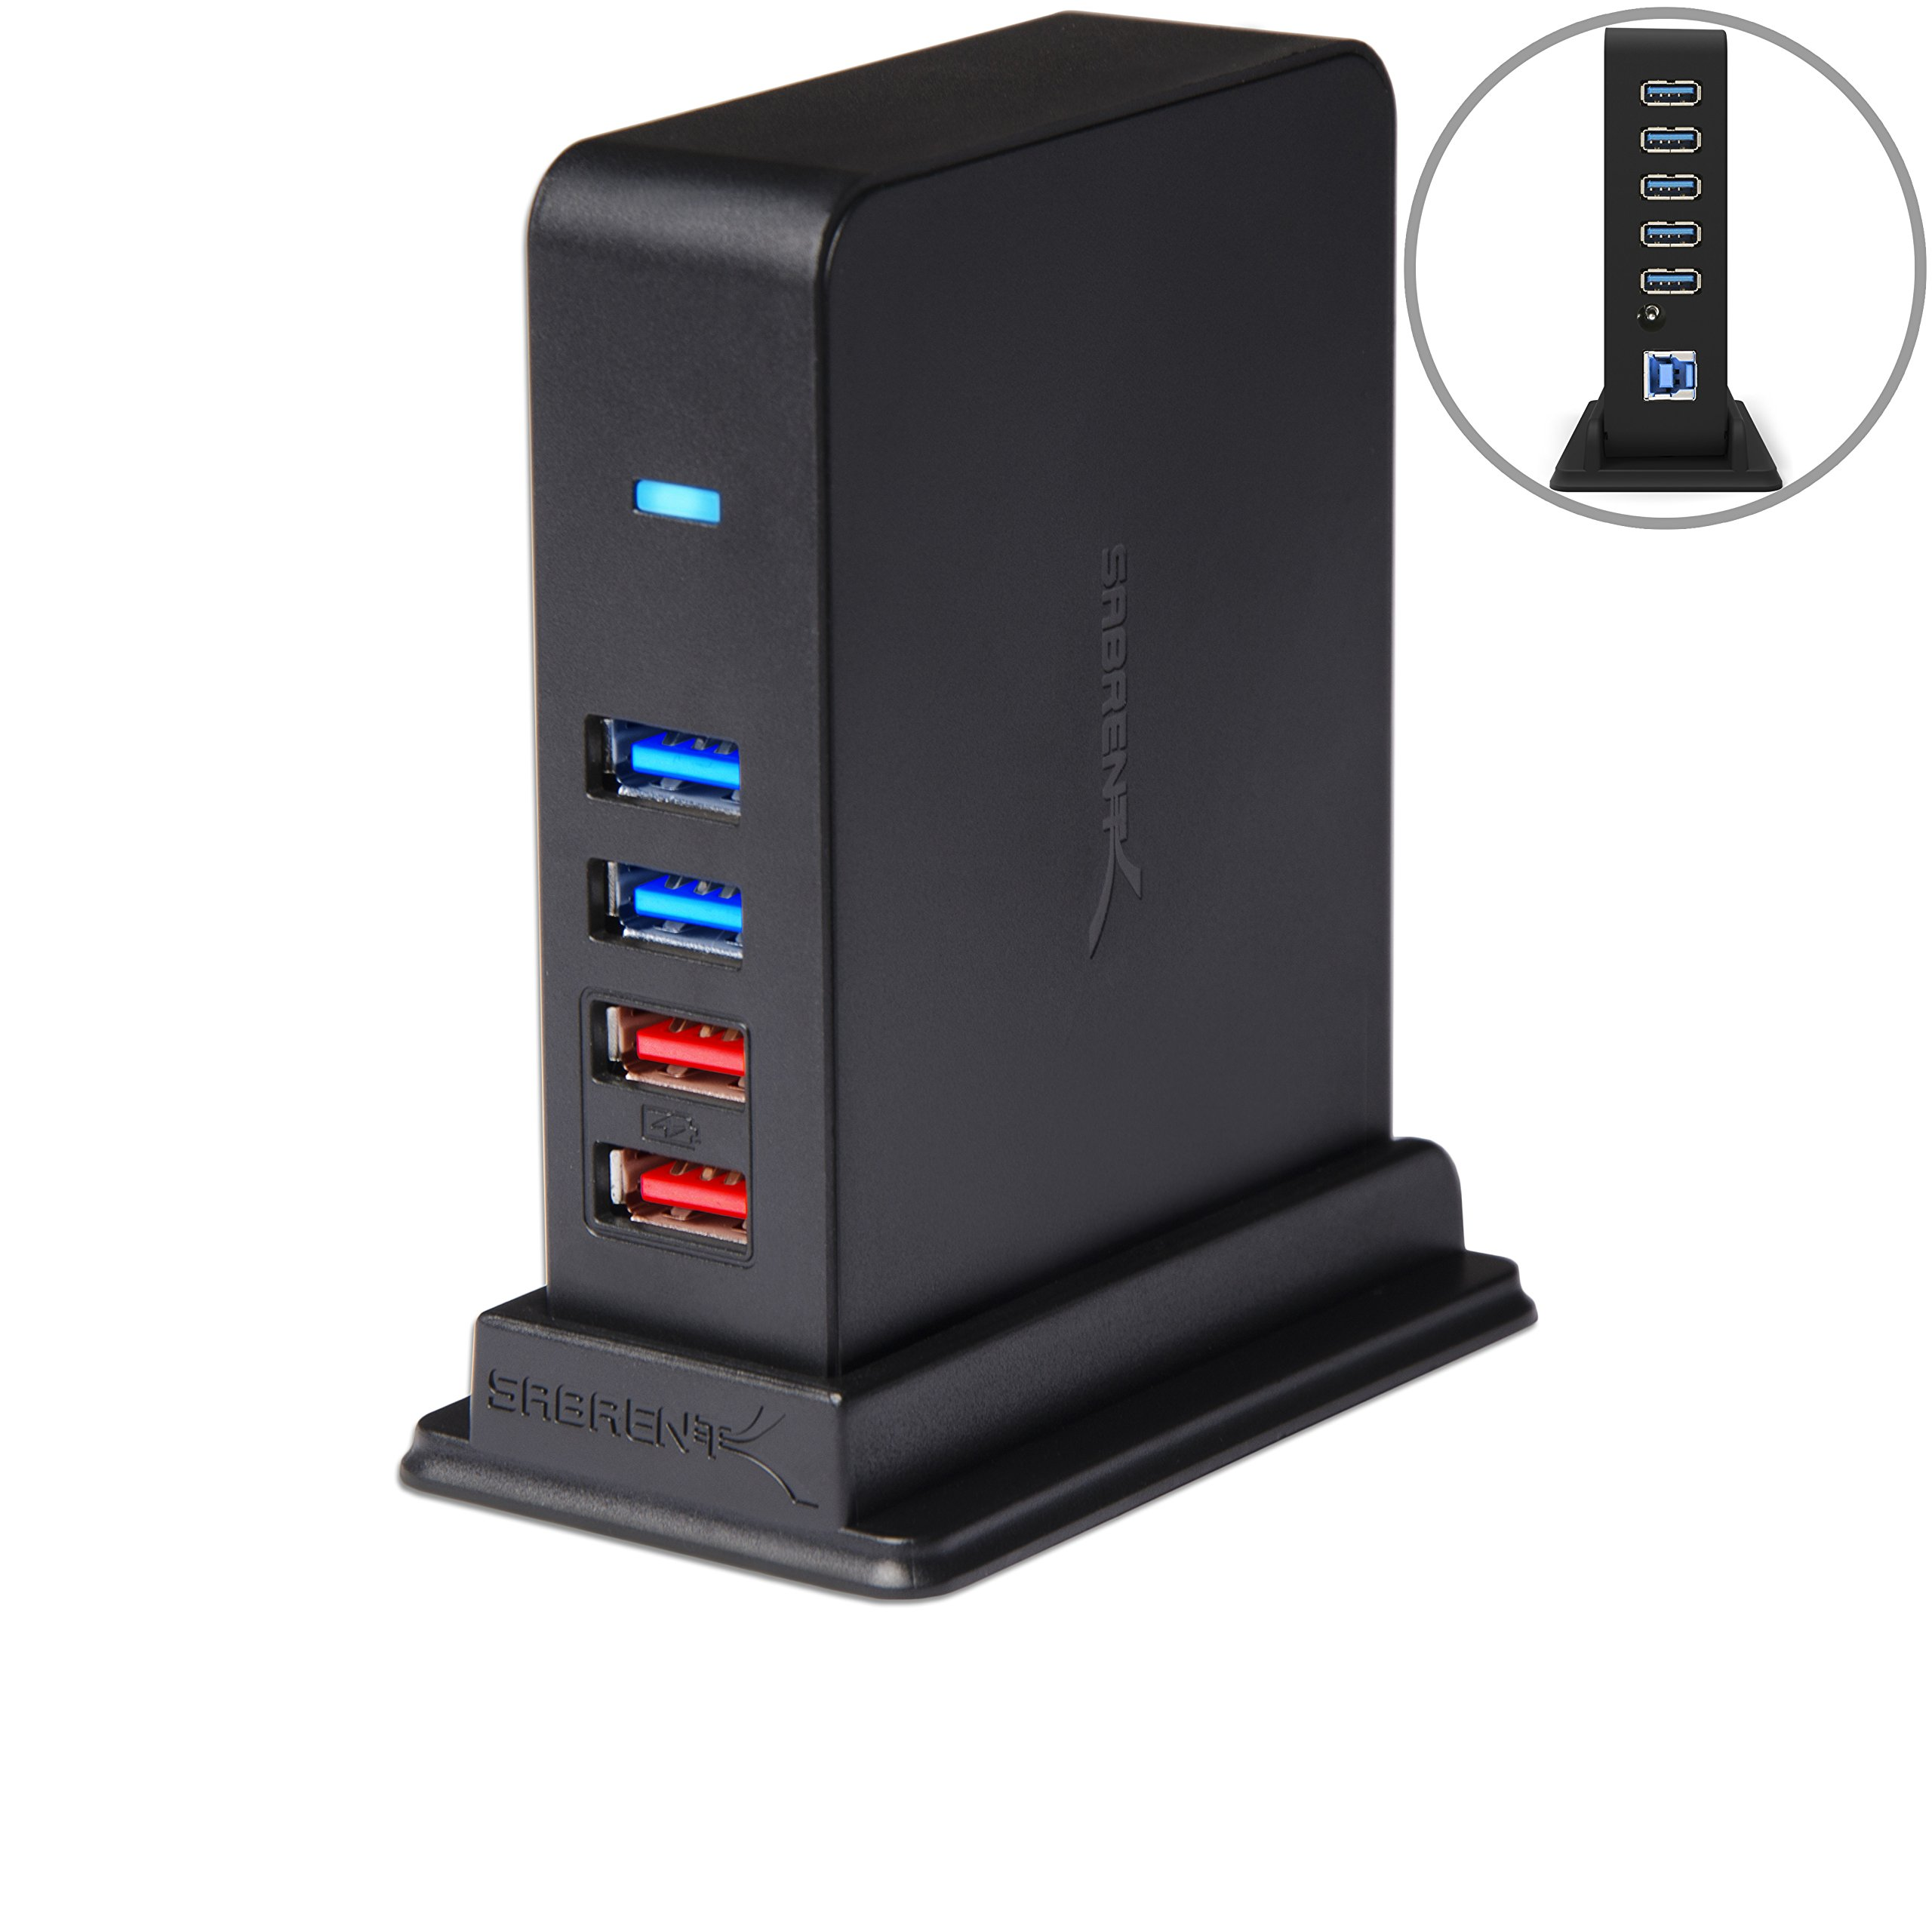 Sabrent 7 Port USB 3.0 HUB + 2 Charging Ports with 12V/4A Power Adapter [Black] (HB-U930) by Sabrent